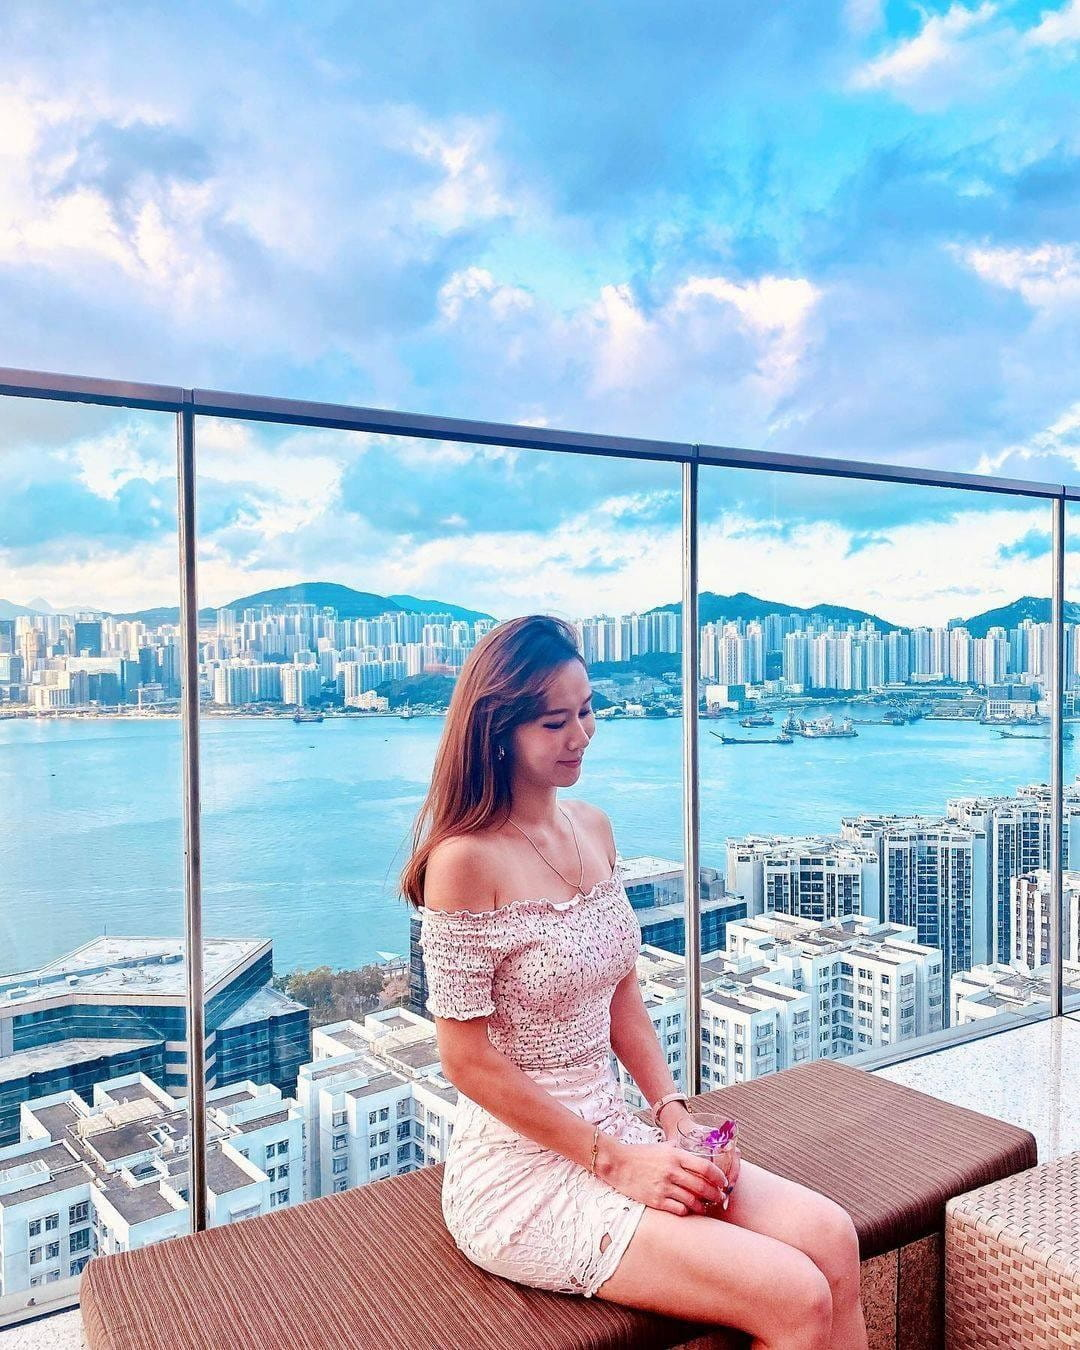 Miss this instagrammable view? Visit us from 3-10pm starting from tomorrow!  📷: @riitawong  #atEAST #PlayatEAST #SugarHongKong #EASTHongKong